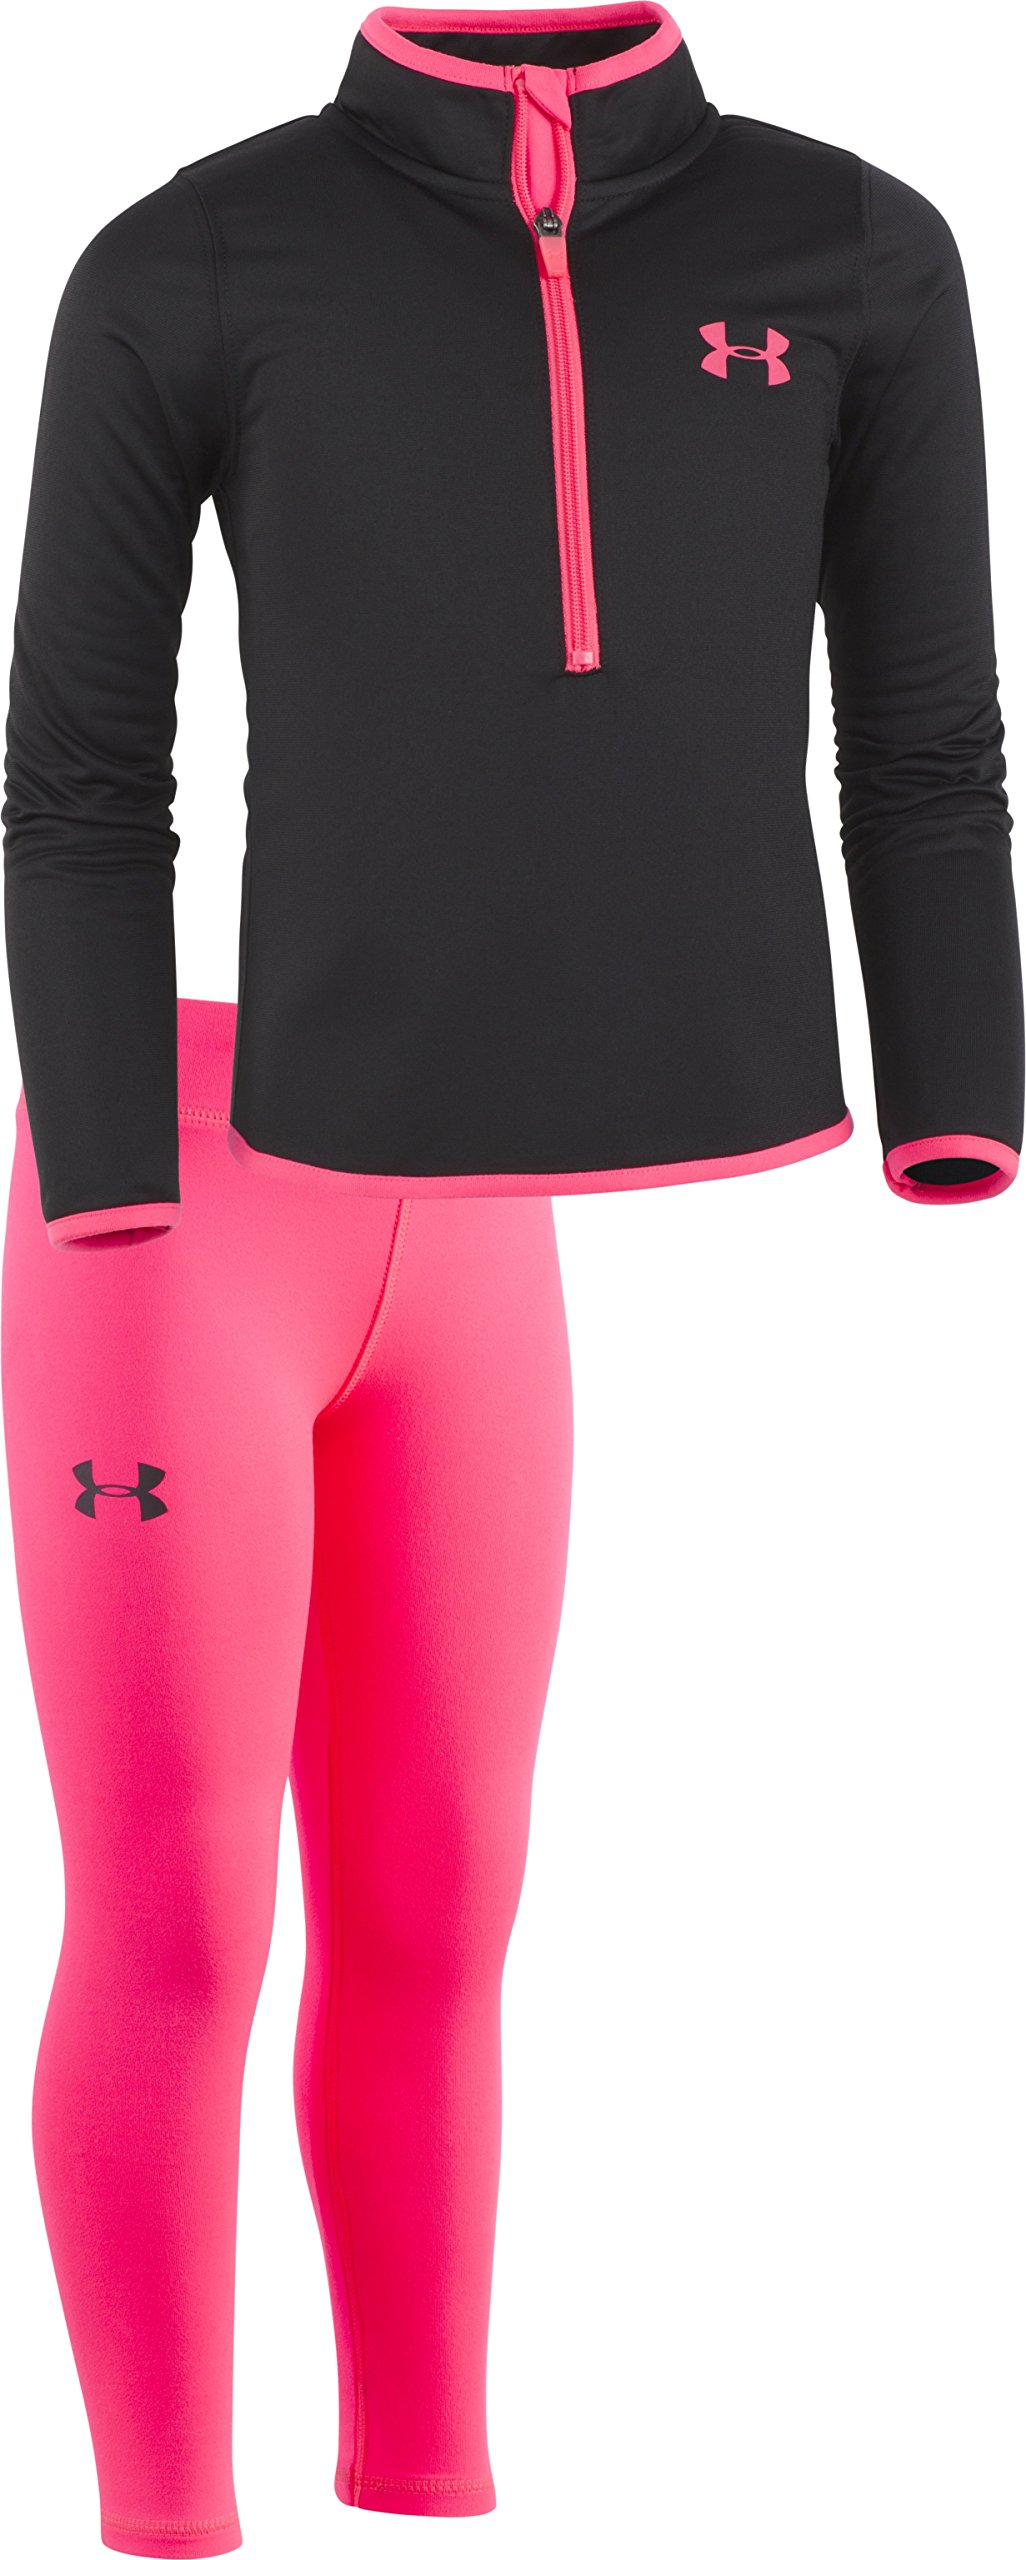 Under Armour Girls Track Jacket and Pant Set product image